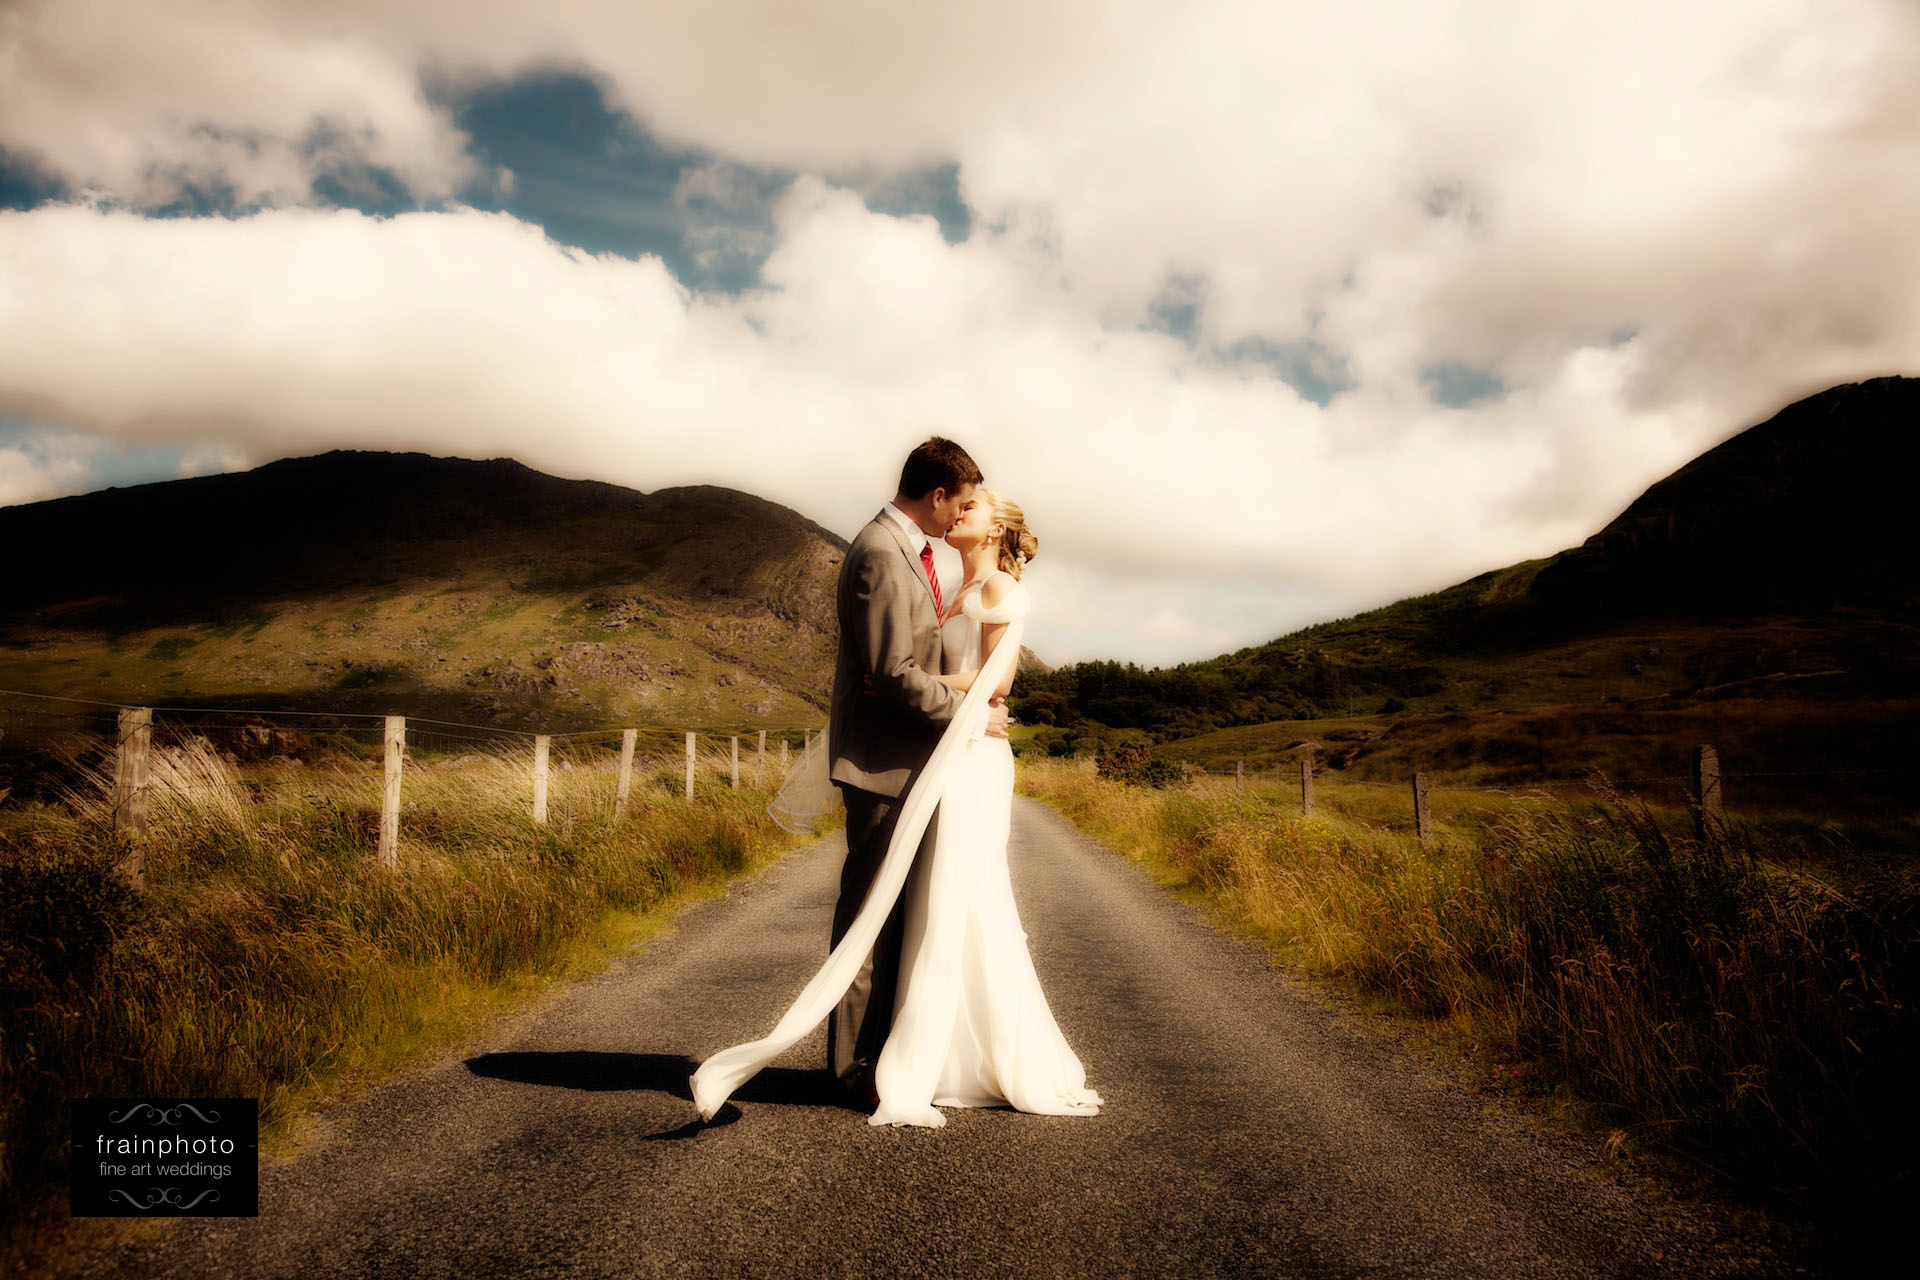 Glengarriff wedding photography